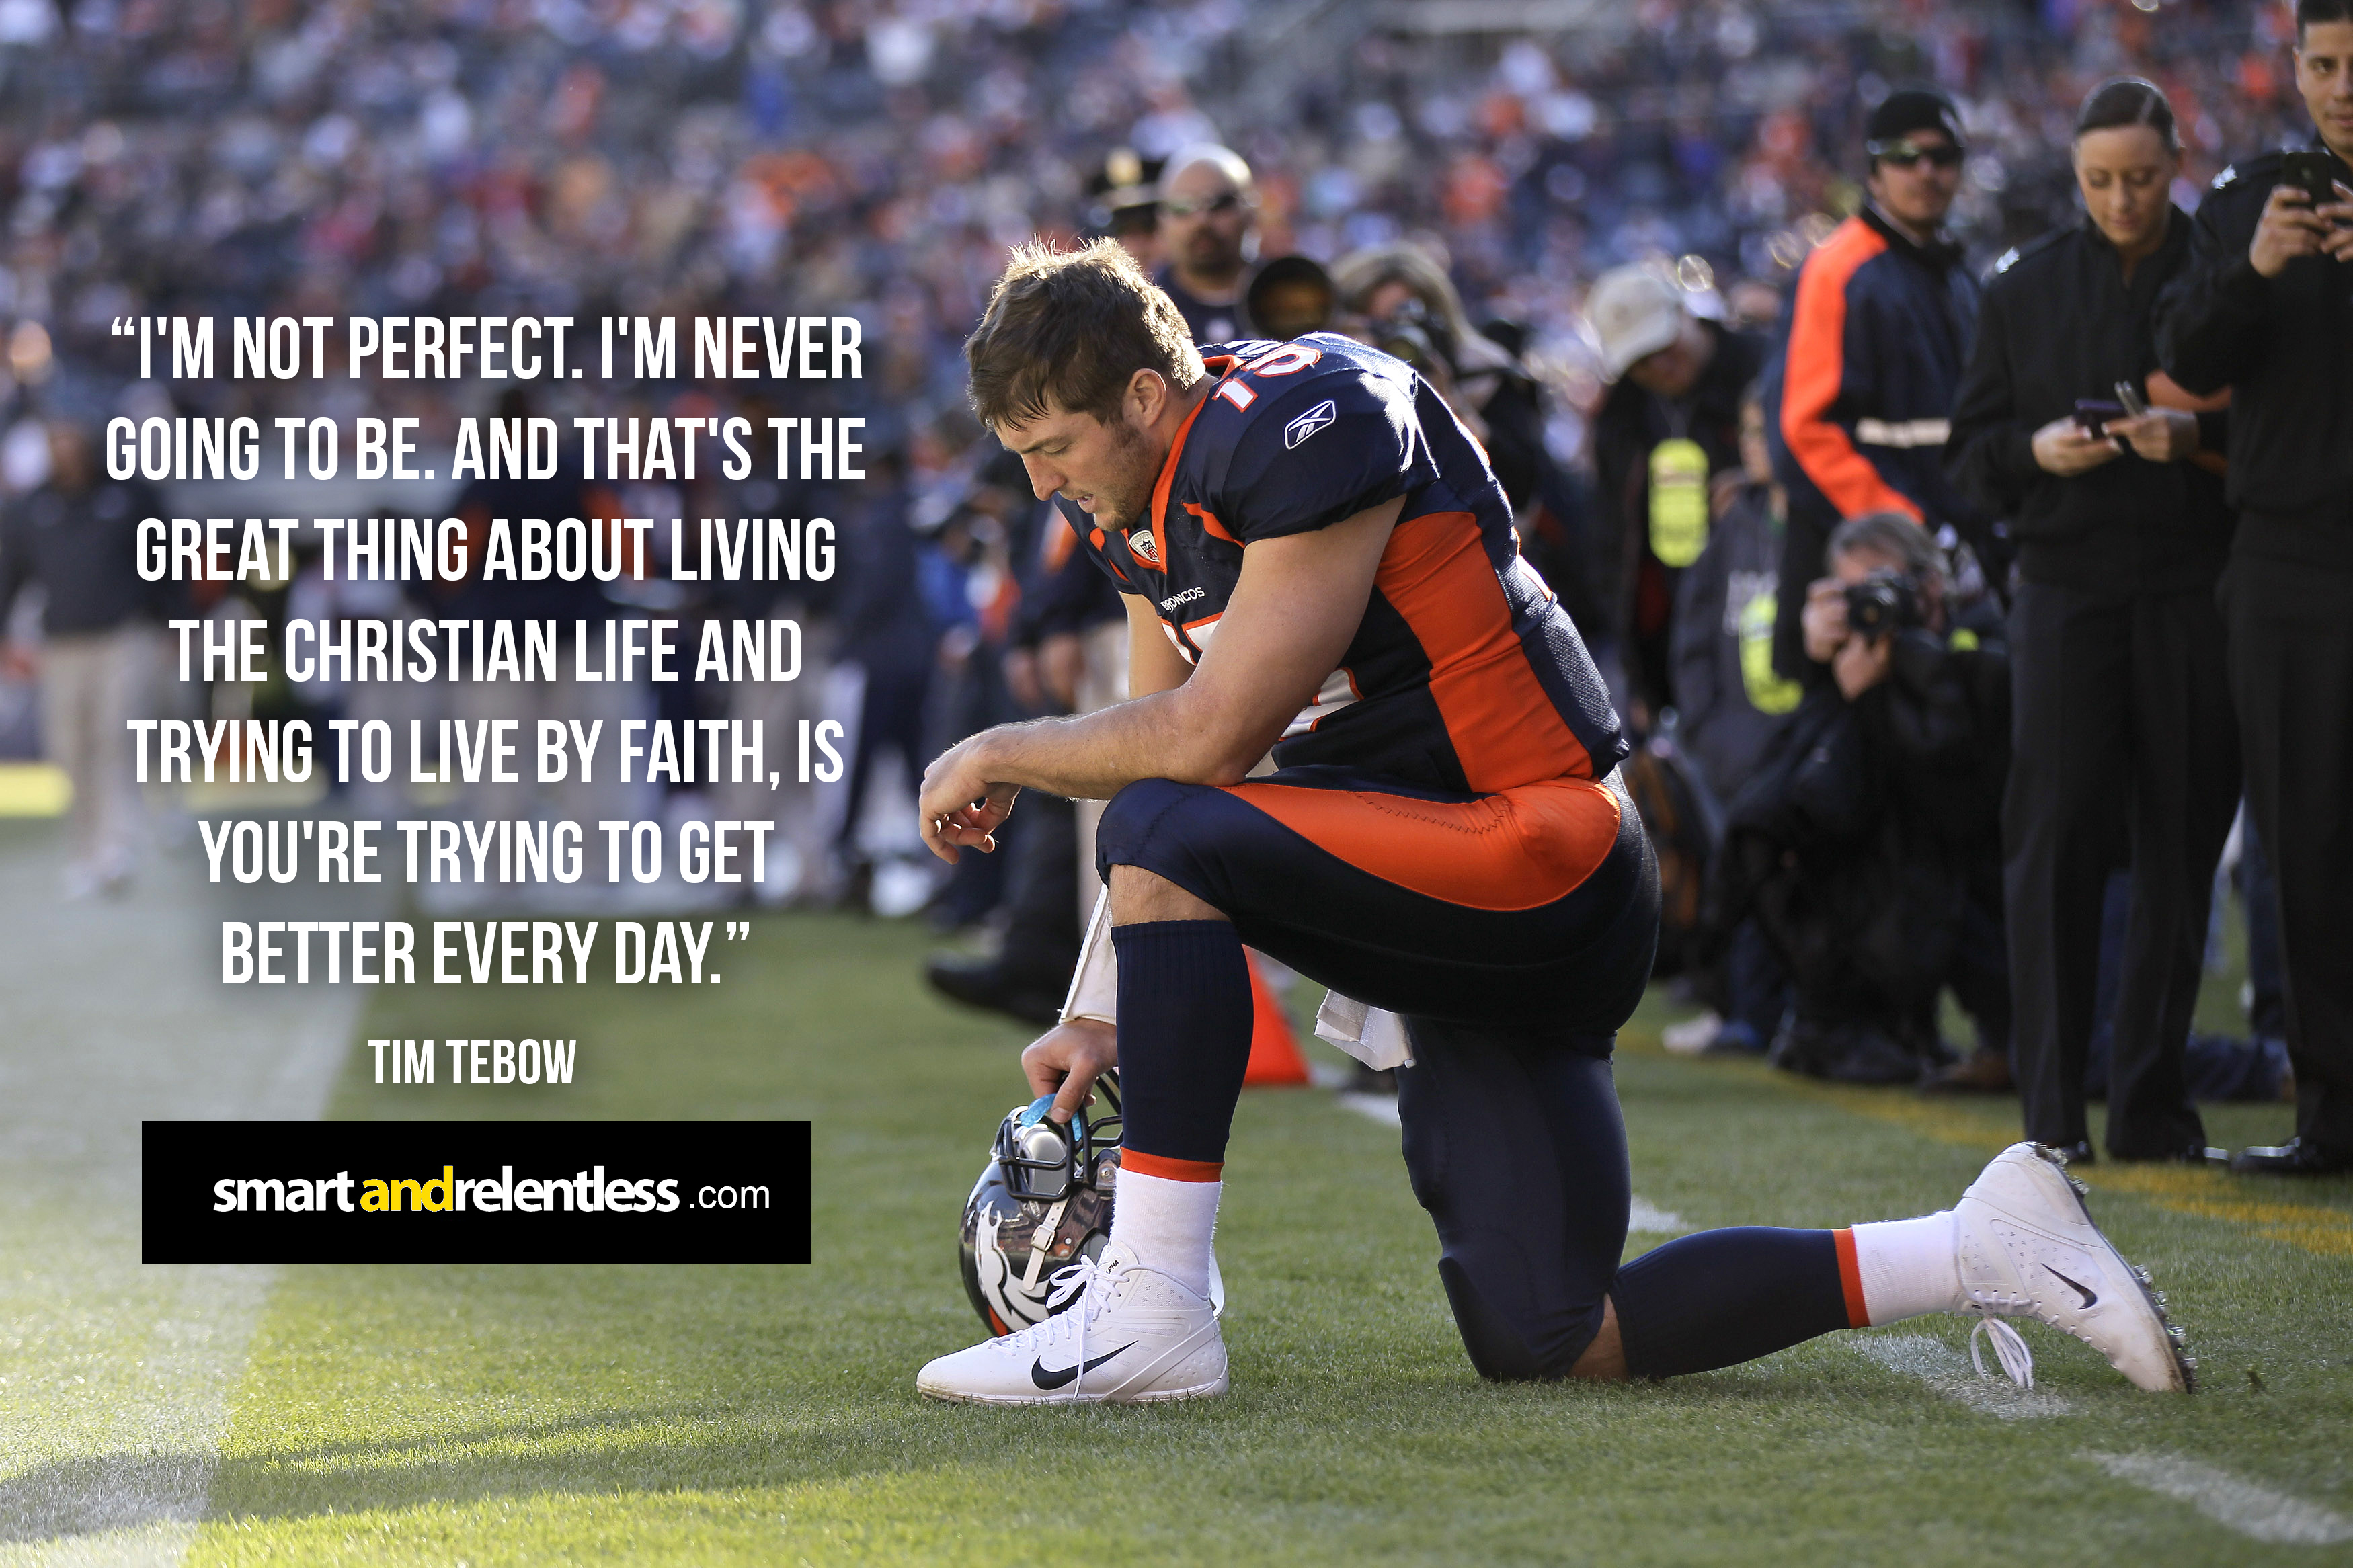 Tim Tebow Inspirational Quotes: Inspiration By Christian Athletes Who Love Jesus Christ